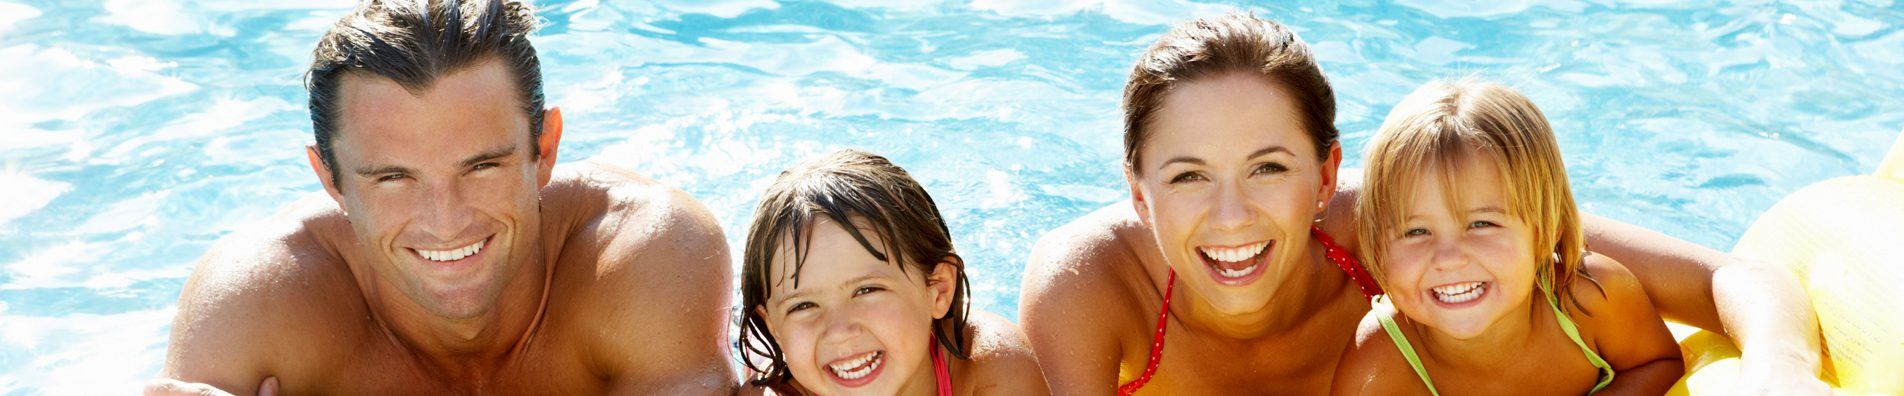 Pool Heater Services CT